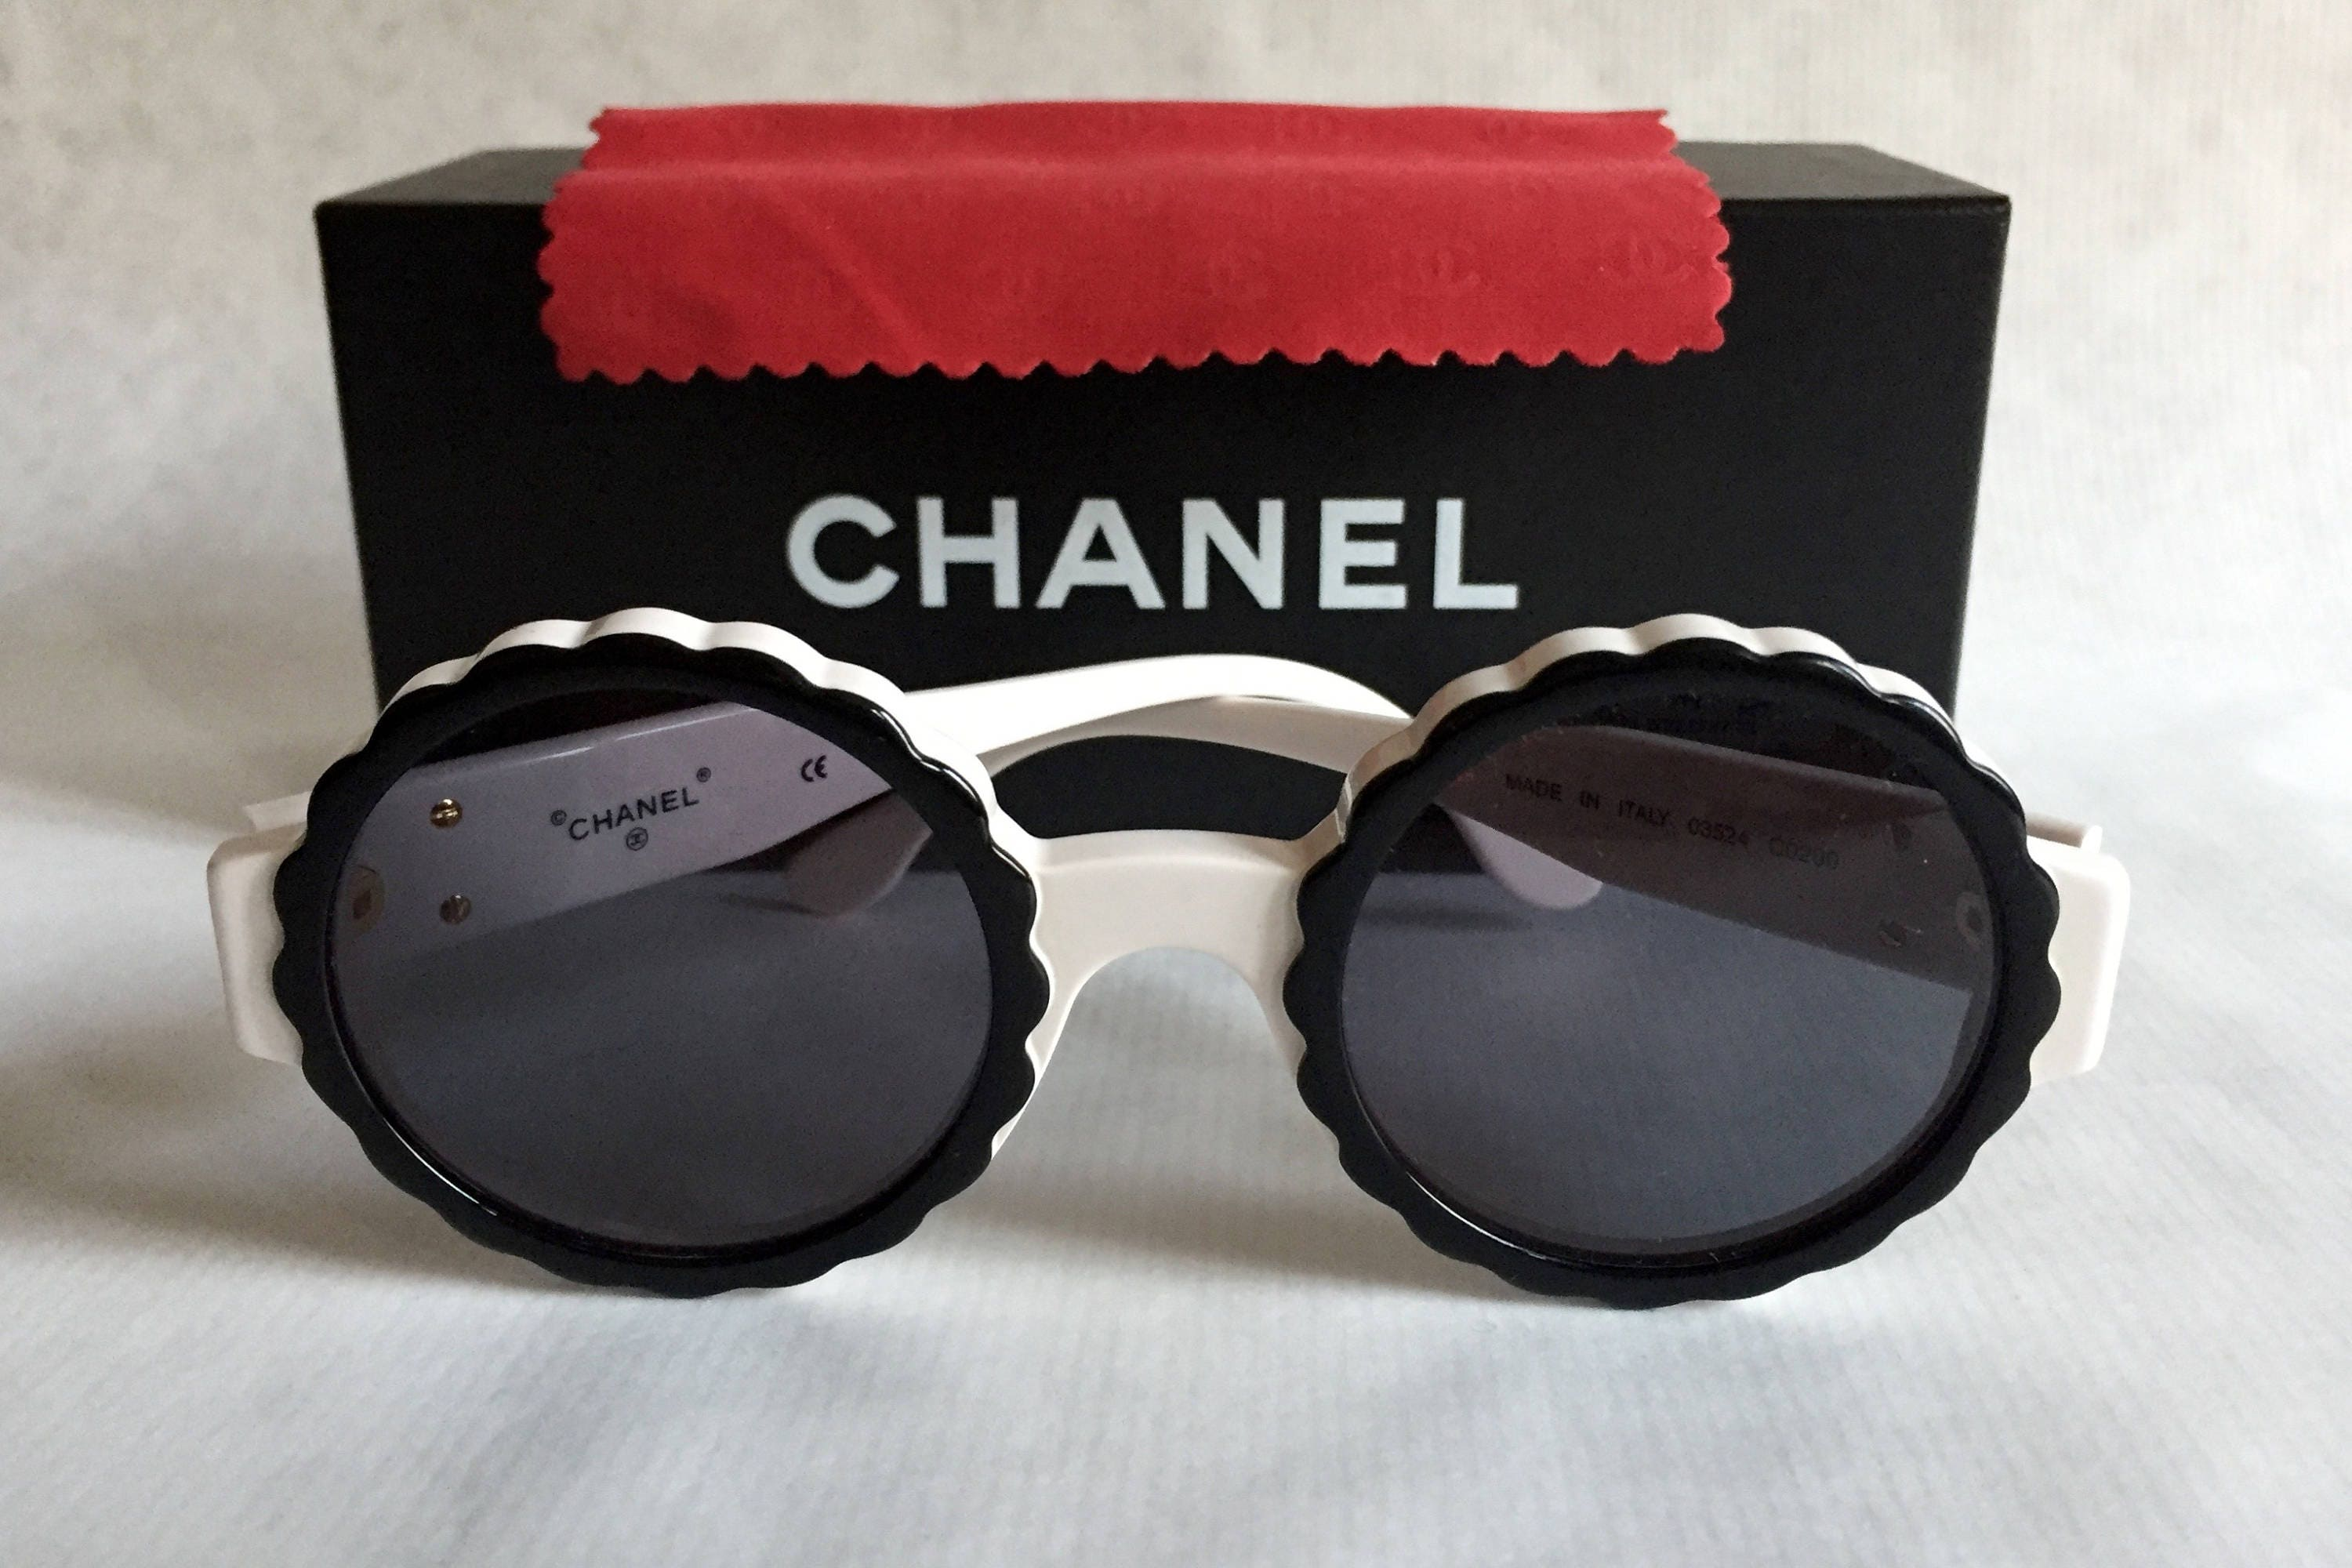 59d9cf3a28589 CHANEL 03524 C0200 Vintage Sunglasses New Old Stock including ...